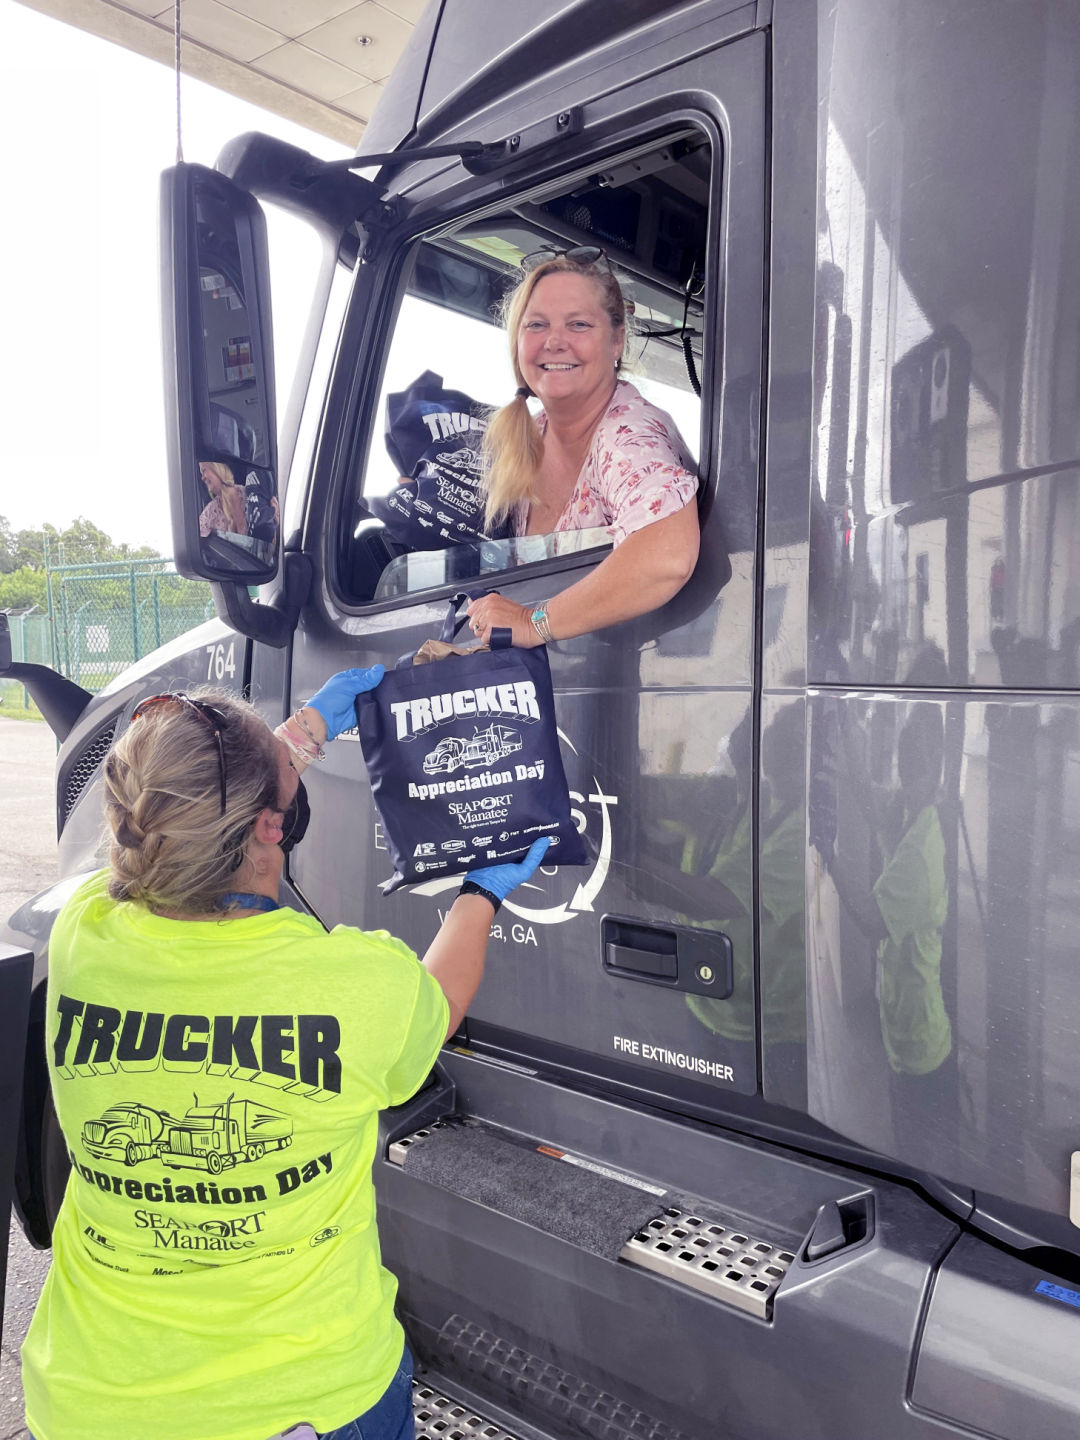 Lisa Rogers Orozco, who drives for Villa Rica, Georgia-based East-West Express Inc., smilingly accepts a goody bag as Port Manatee thanks professional drivers with its sixth annual Trucker Appreciation Day.